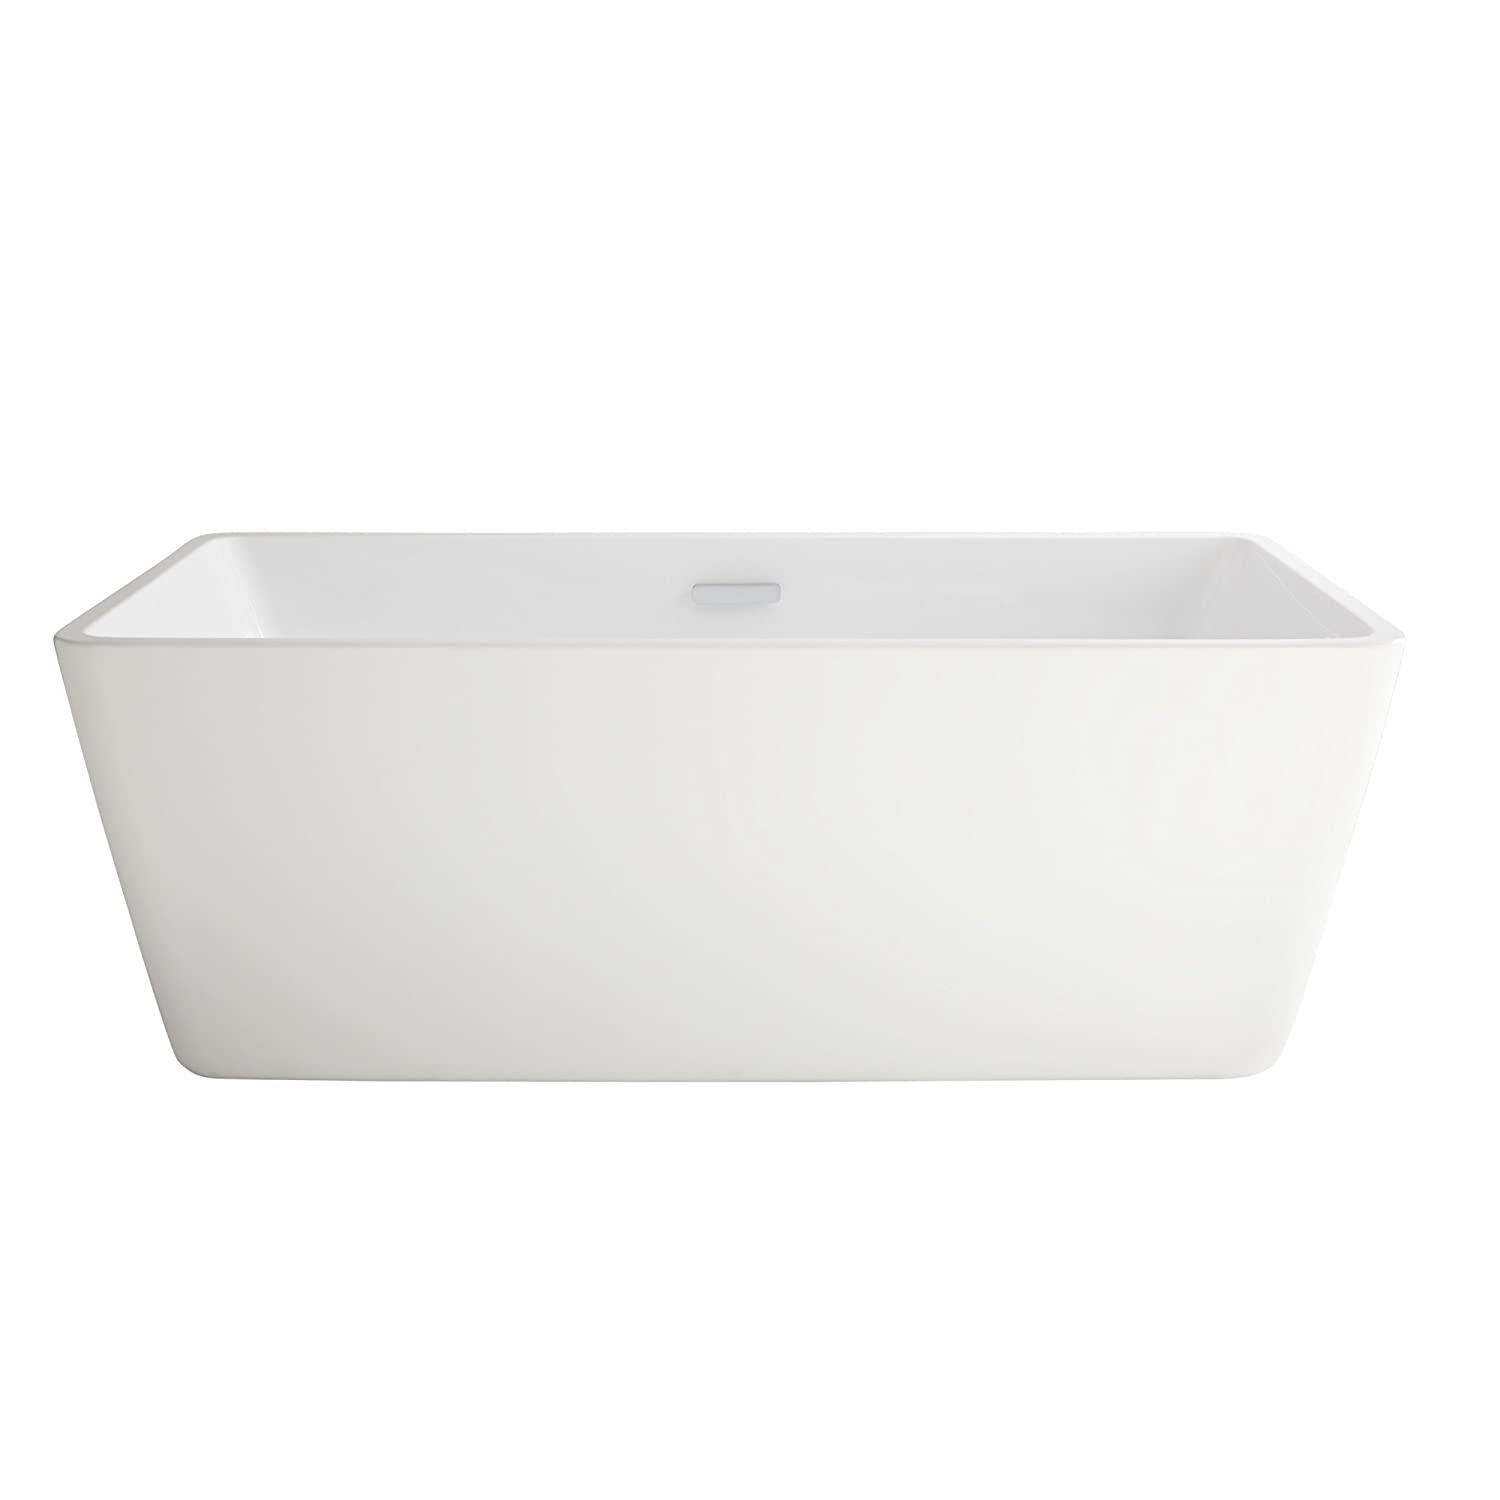 garden ove overstock american free product bathtub home rachel shipping tub standard inch freestanding decors today